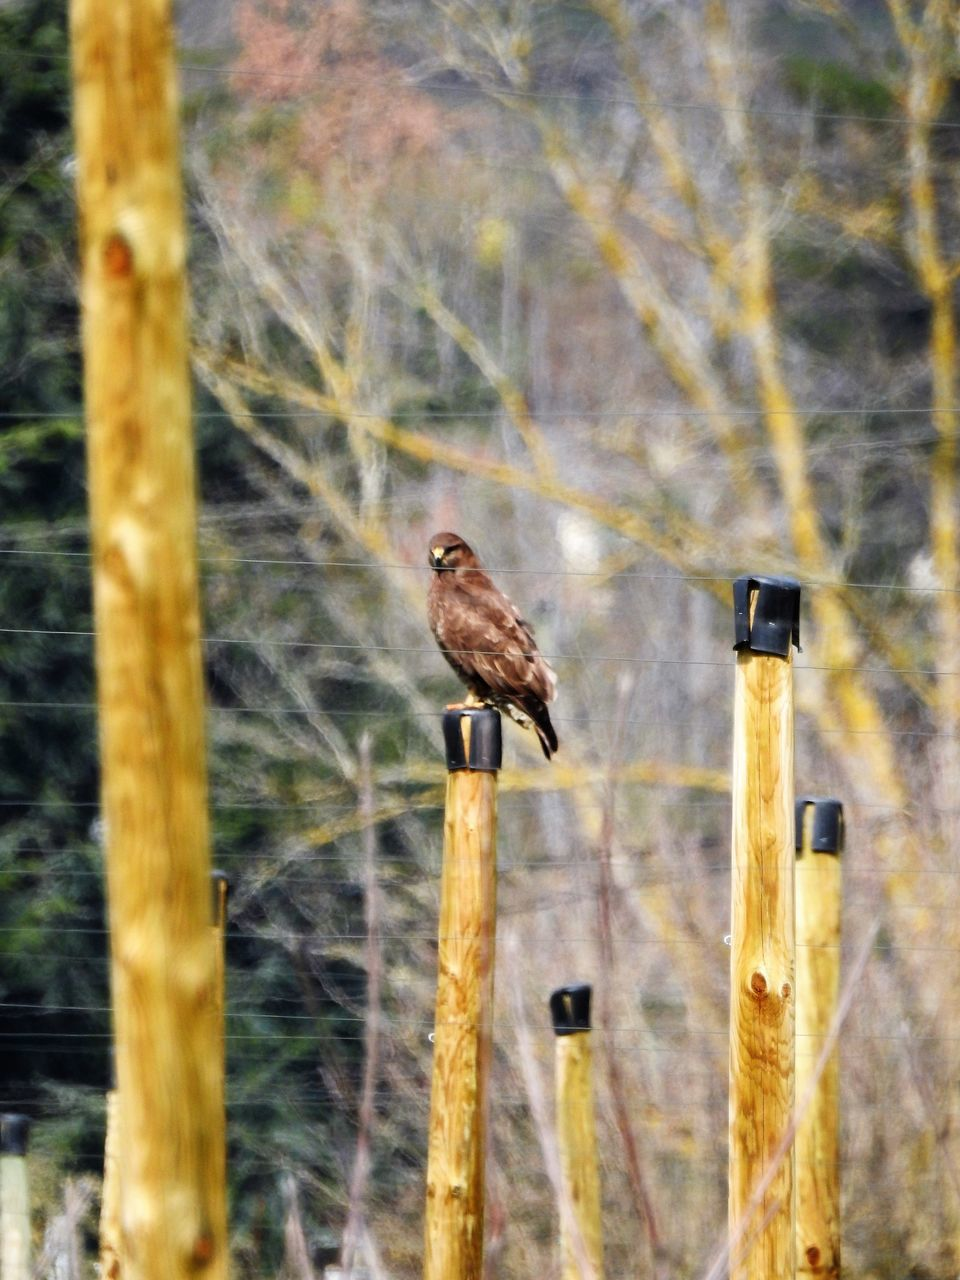 animal themes, bird, animals in the wild, perching, one animal, animal wildlife, focus on foreground, no people, day, outdoors, nature, wooden post, close-up